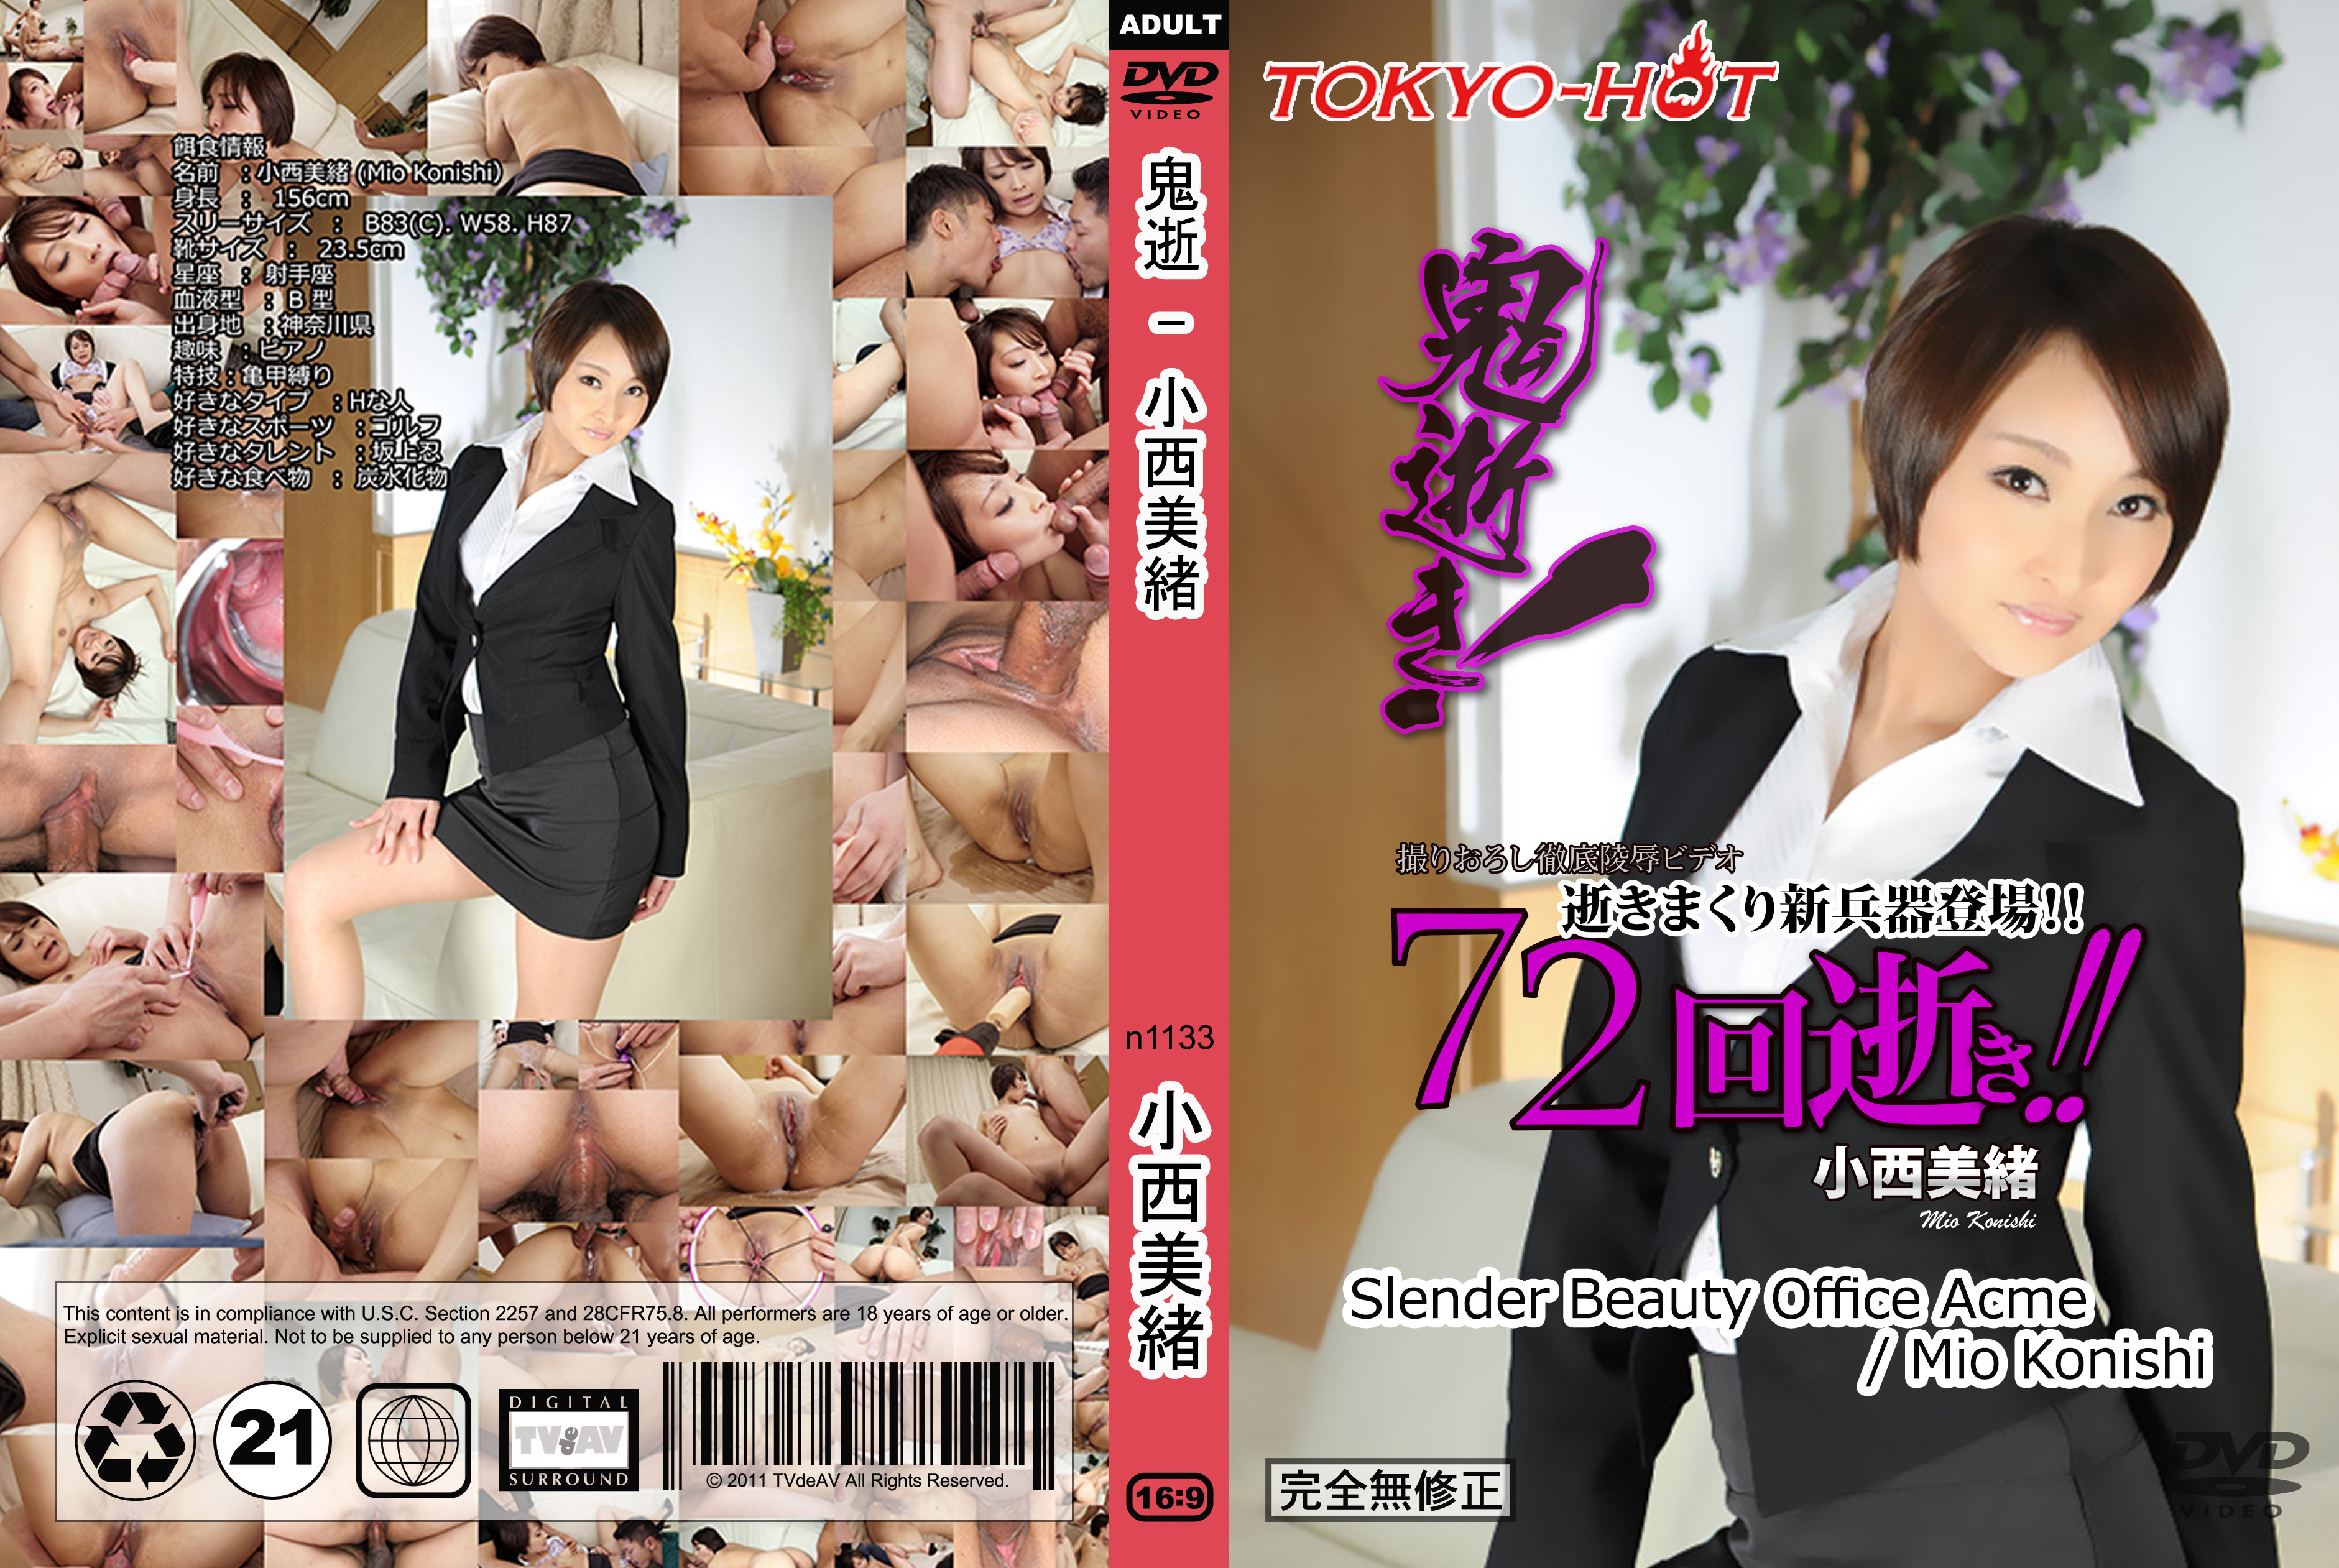 Slender Beauty Office Acme Mio Konishi